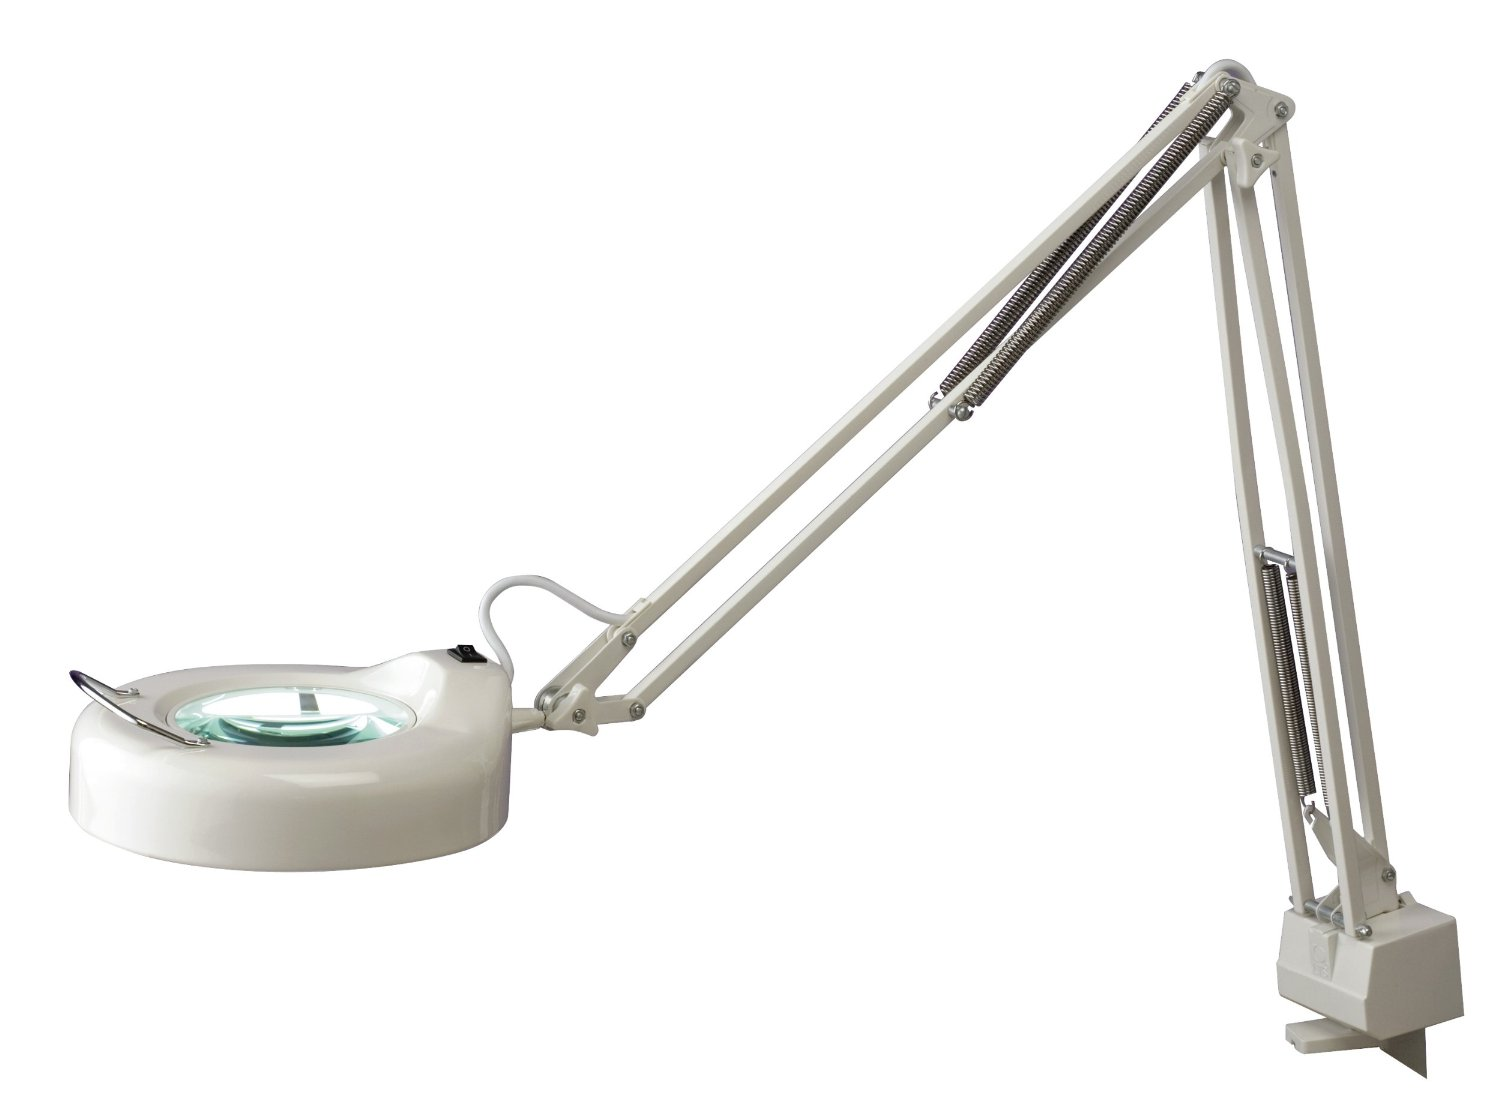 "Normande Lighting 22W Daylight Spectrum Clamp Lamp w/Magnifier. 42"" in Height with white Painted Finish"